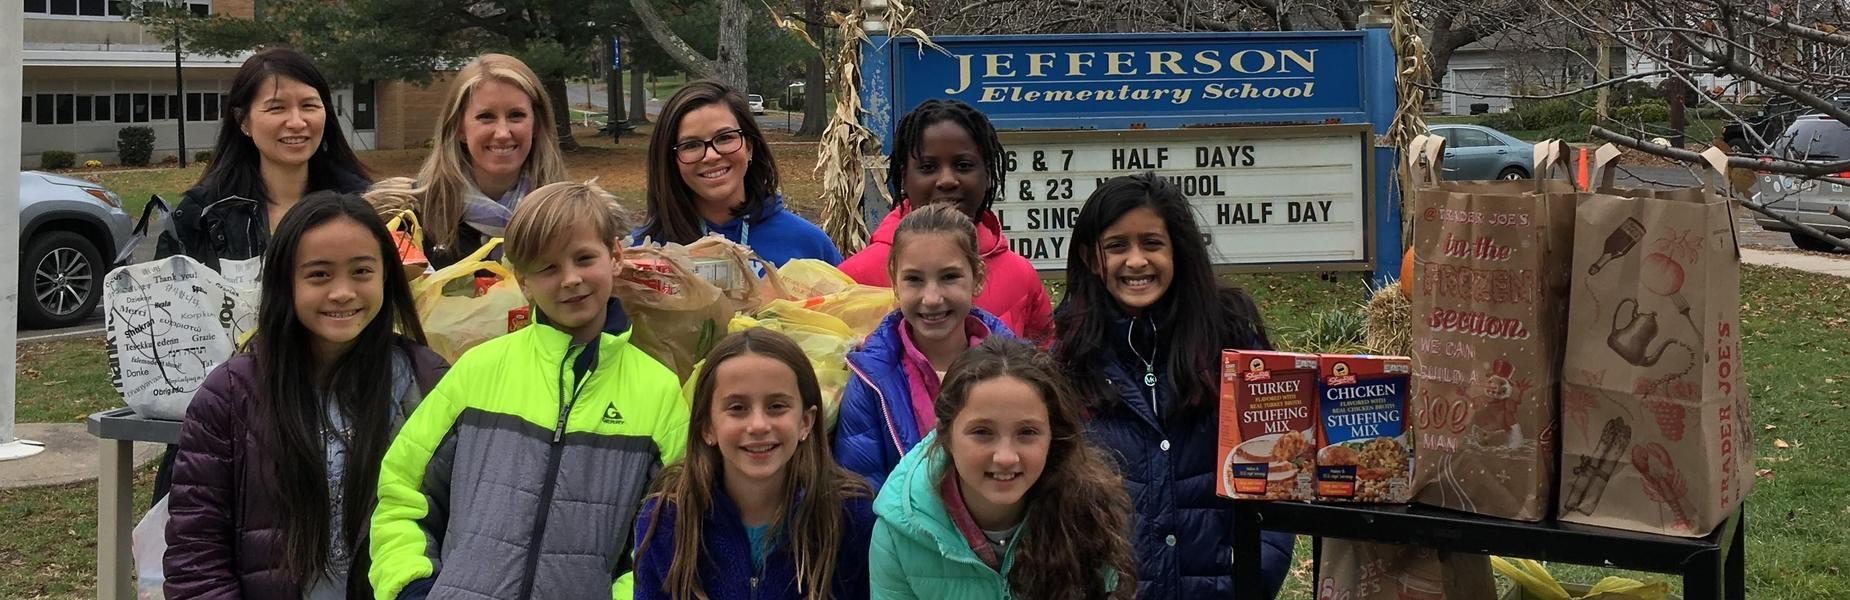 The Early Act Club of Jefferson School coordinated a food drive to help those less fortunate.  Members of the club and their advisors, along with Jefferson principal Dr. Susie Hung (upper left), delivered the food items on Nov. 20 to Grace Presbyterian Church.